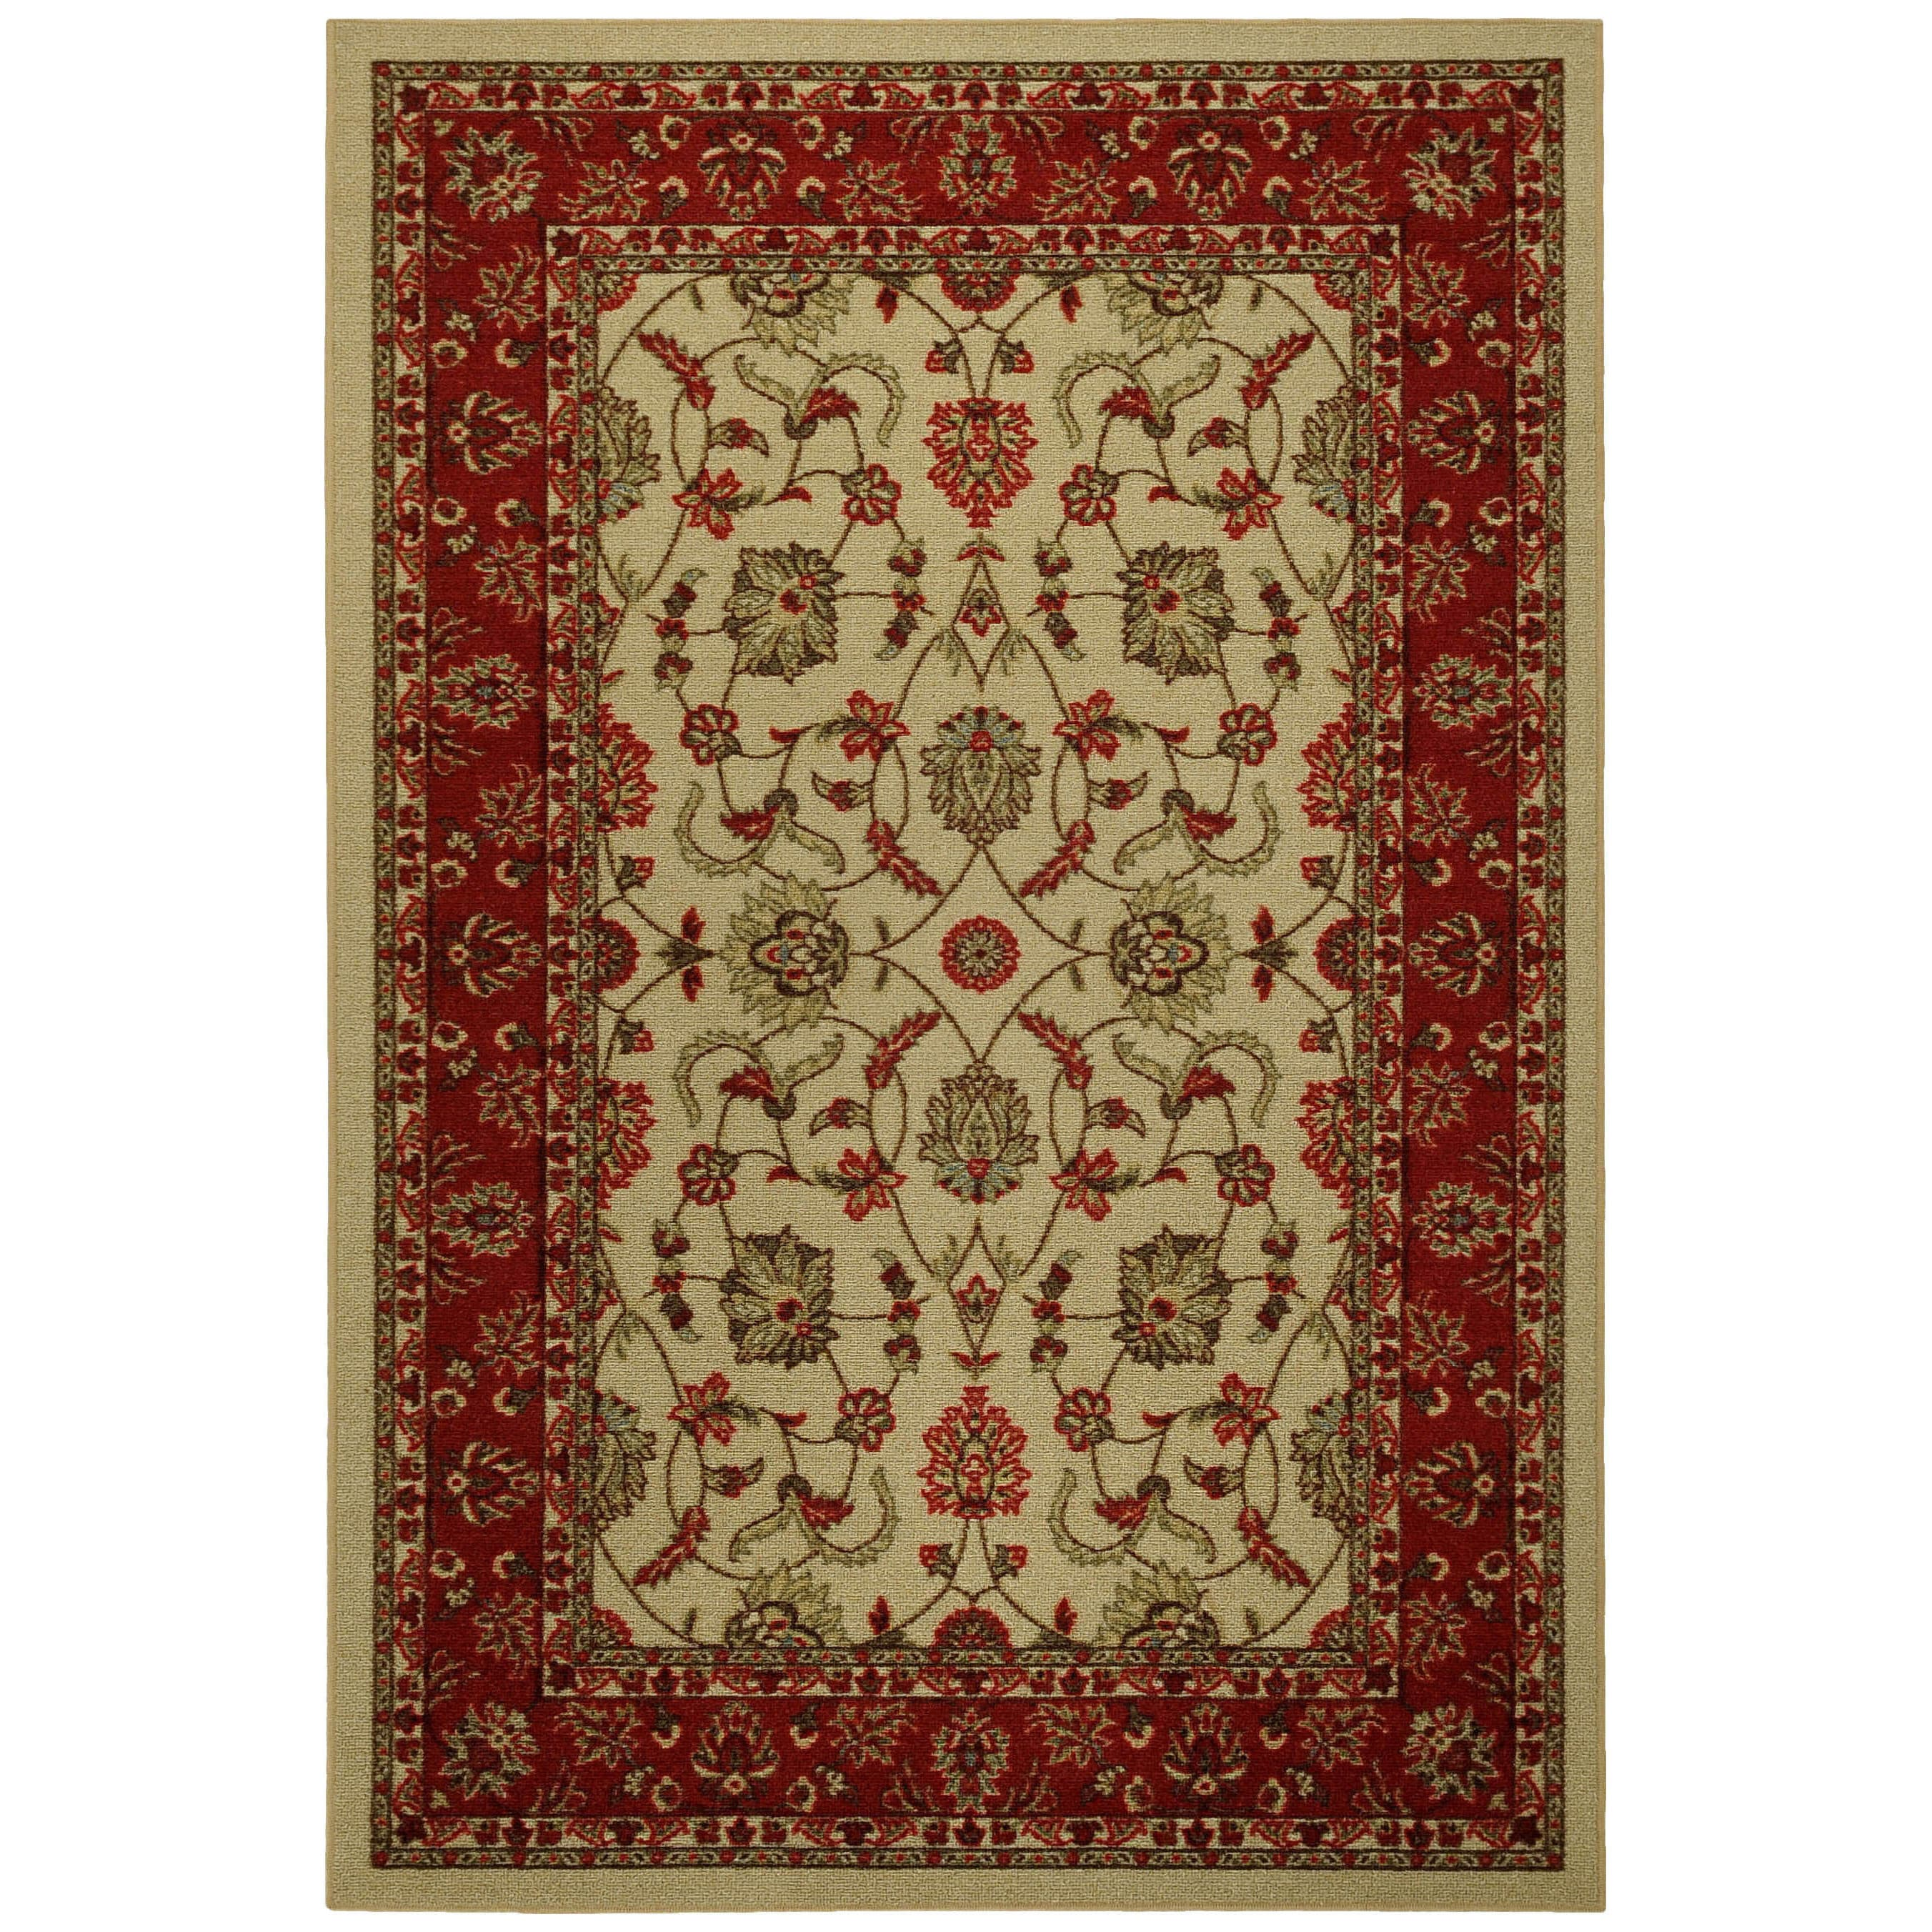 Rubber Back Ivory Traditional Floral Non-Skid Area Rug (5' x 6'6) at Sears.com